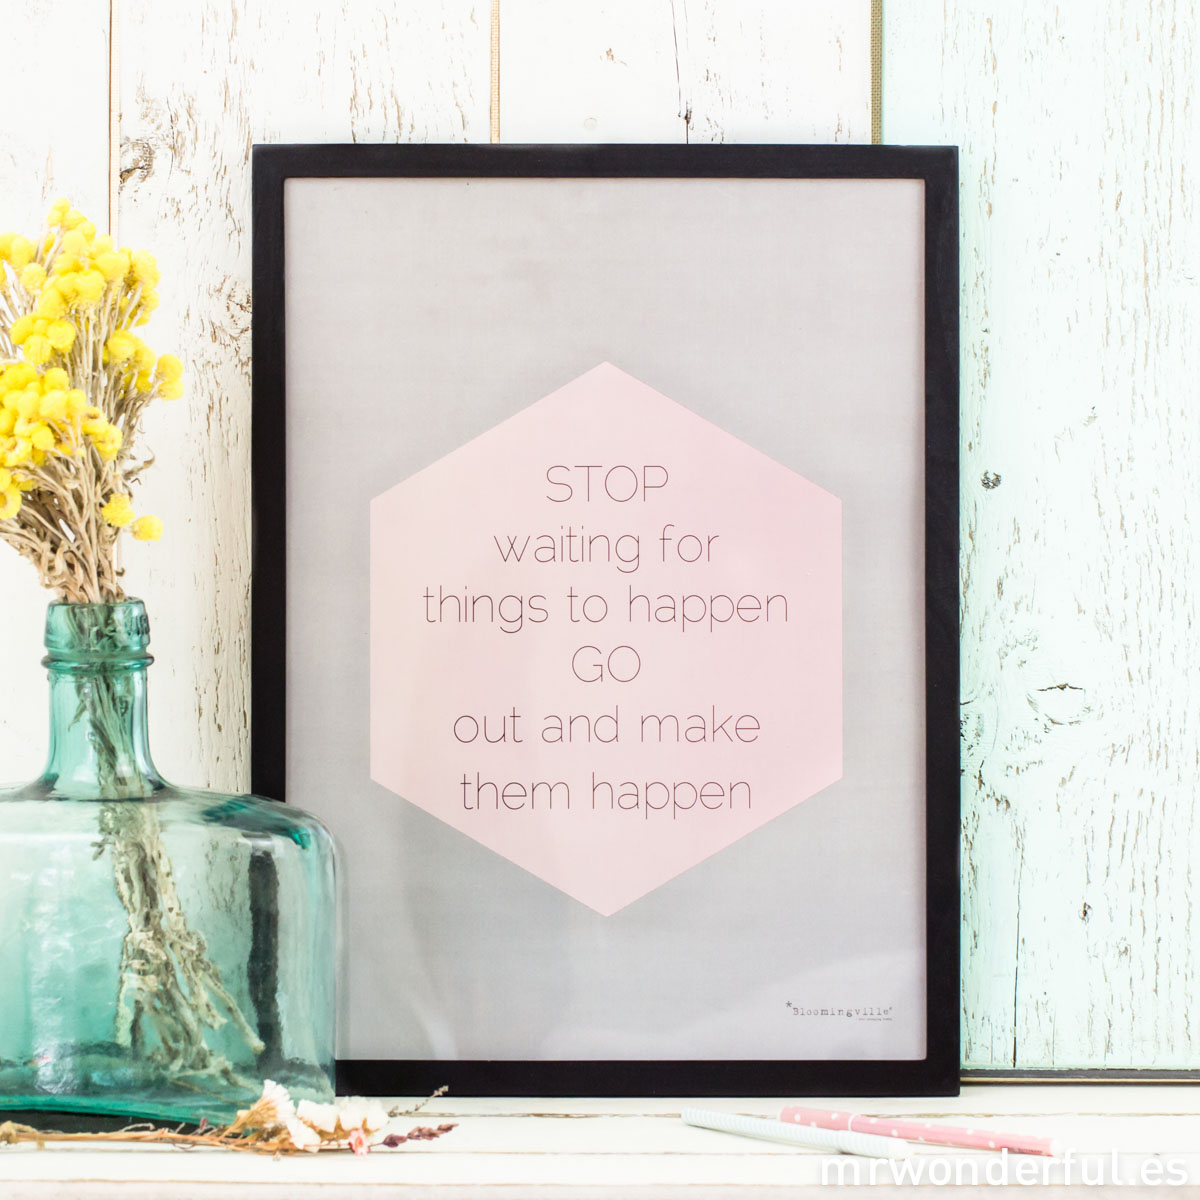 mrwonderful_50200058_cuadro-grande_stop-waiting-things-1